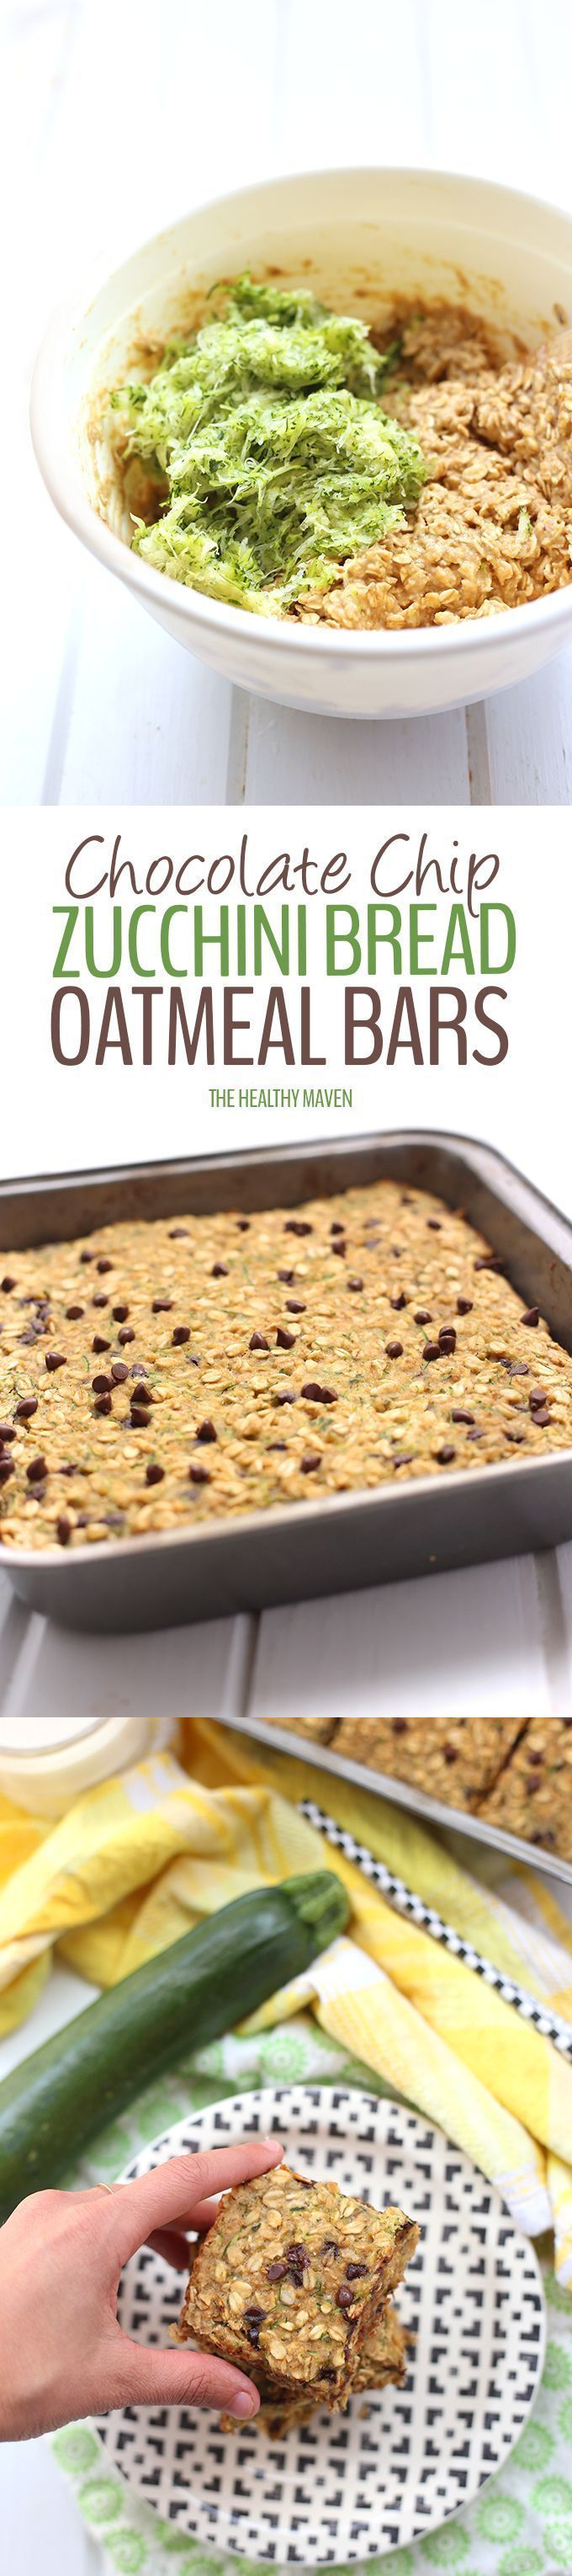 Mix your veggies and chocolate with this healthy Chocolate Chip Zucchini Bread Oatmeal Bars recipe!